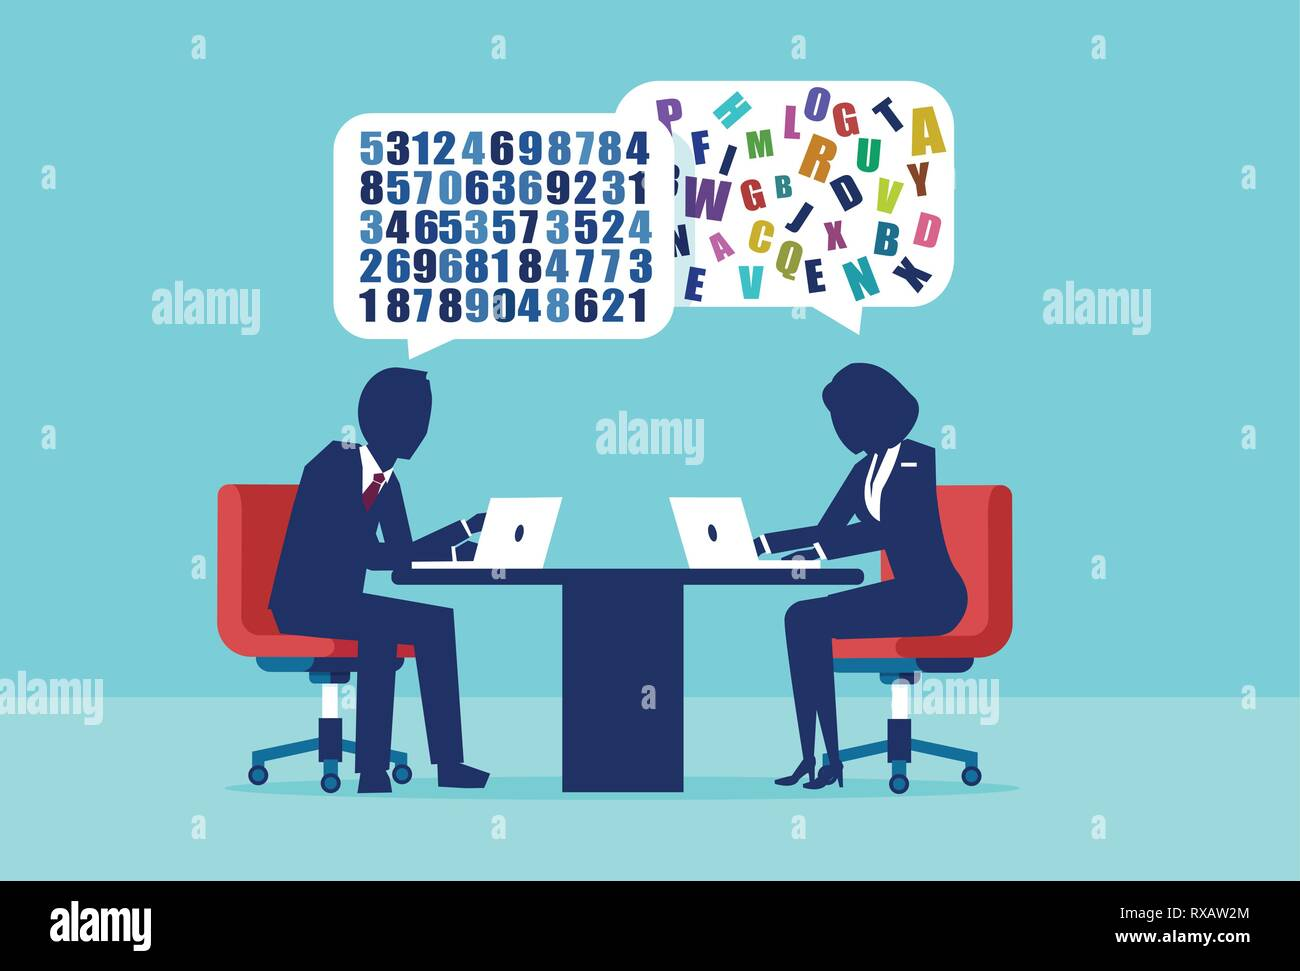 Difference distinction in man and woman mindset concept. Vector of a businessman and businesswoman having a different approach to problem solving - Stock Image